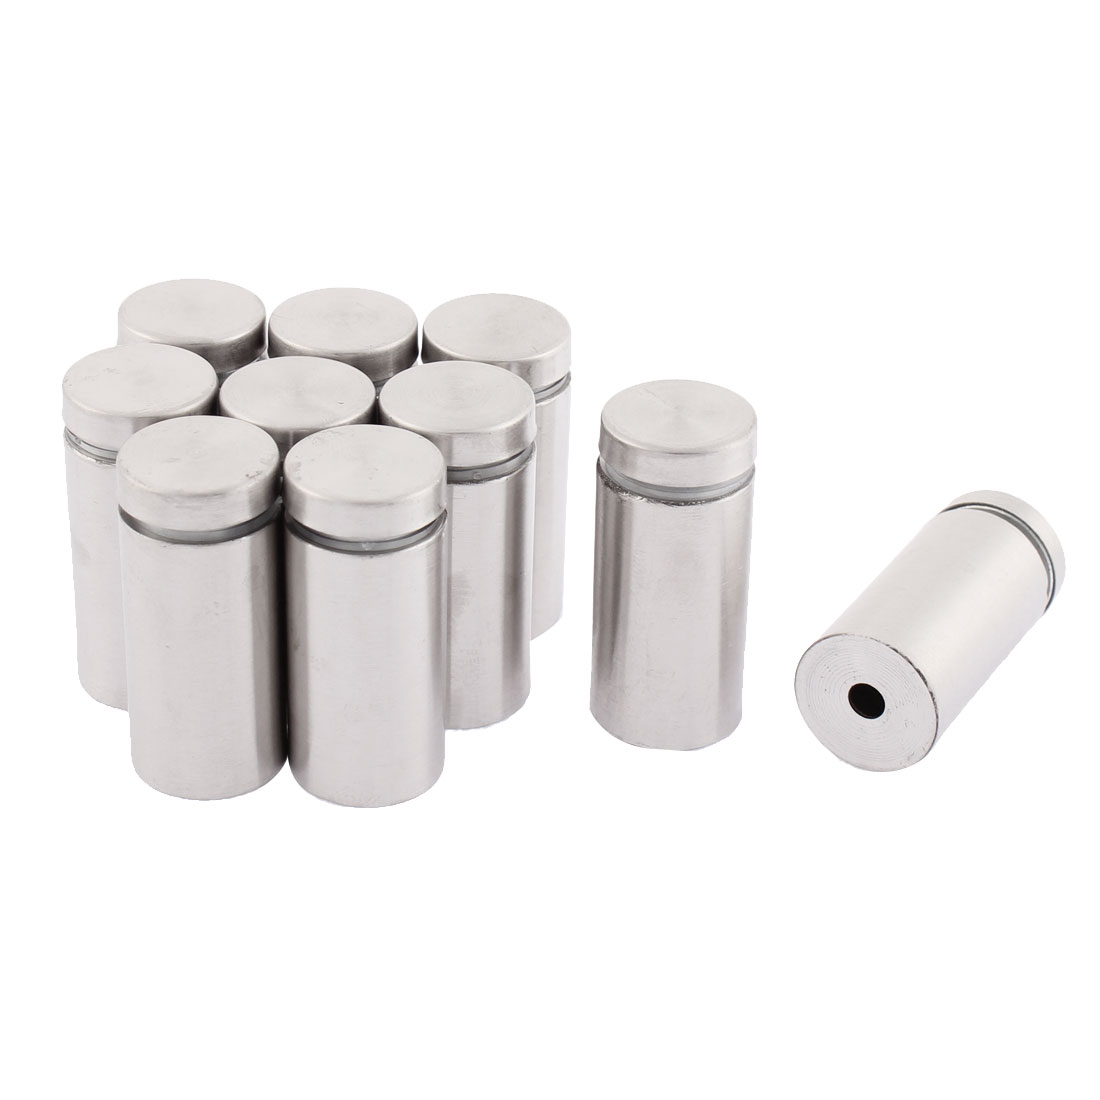 Stainless Steel Advertisement Nails Glass Marble Standoff 19mmx40mm 10pcs